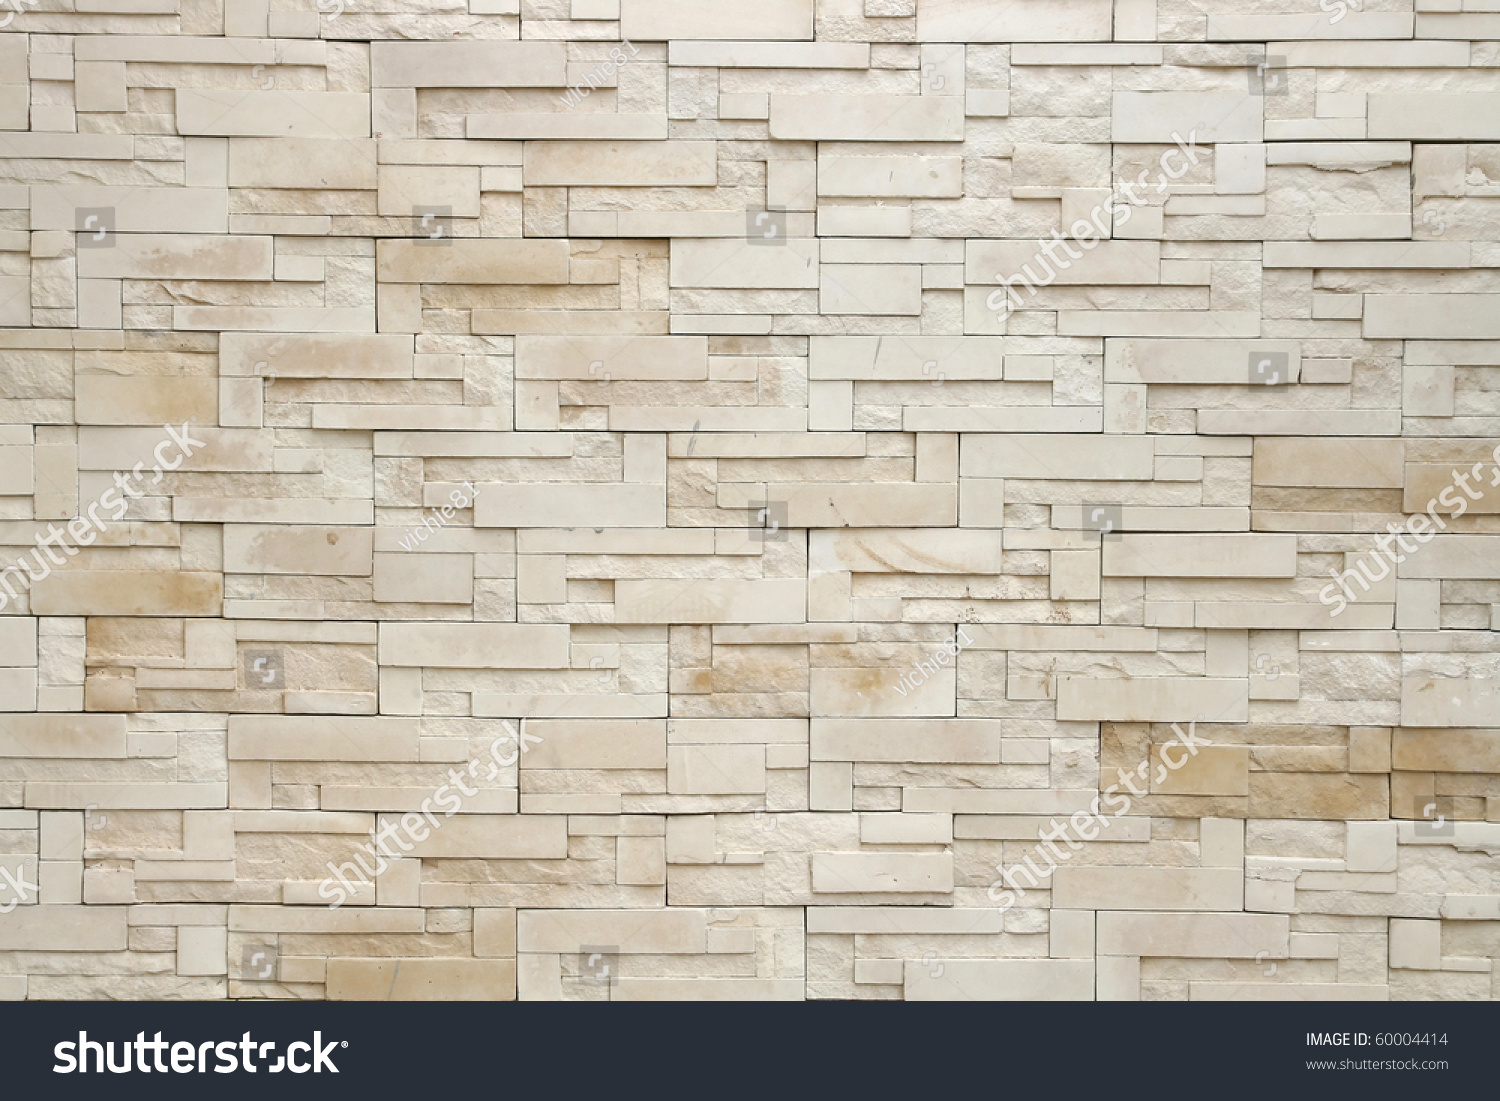 Uncategorized Modern Brick Walls pattern white modern stone brick wall stock photo 60004414 of surfaced